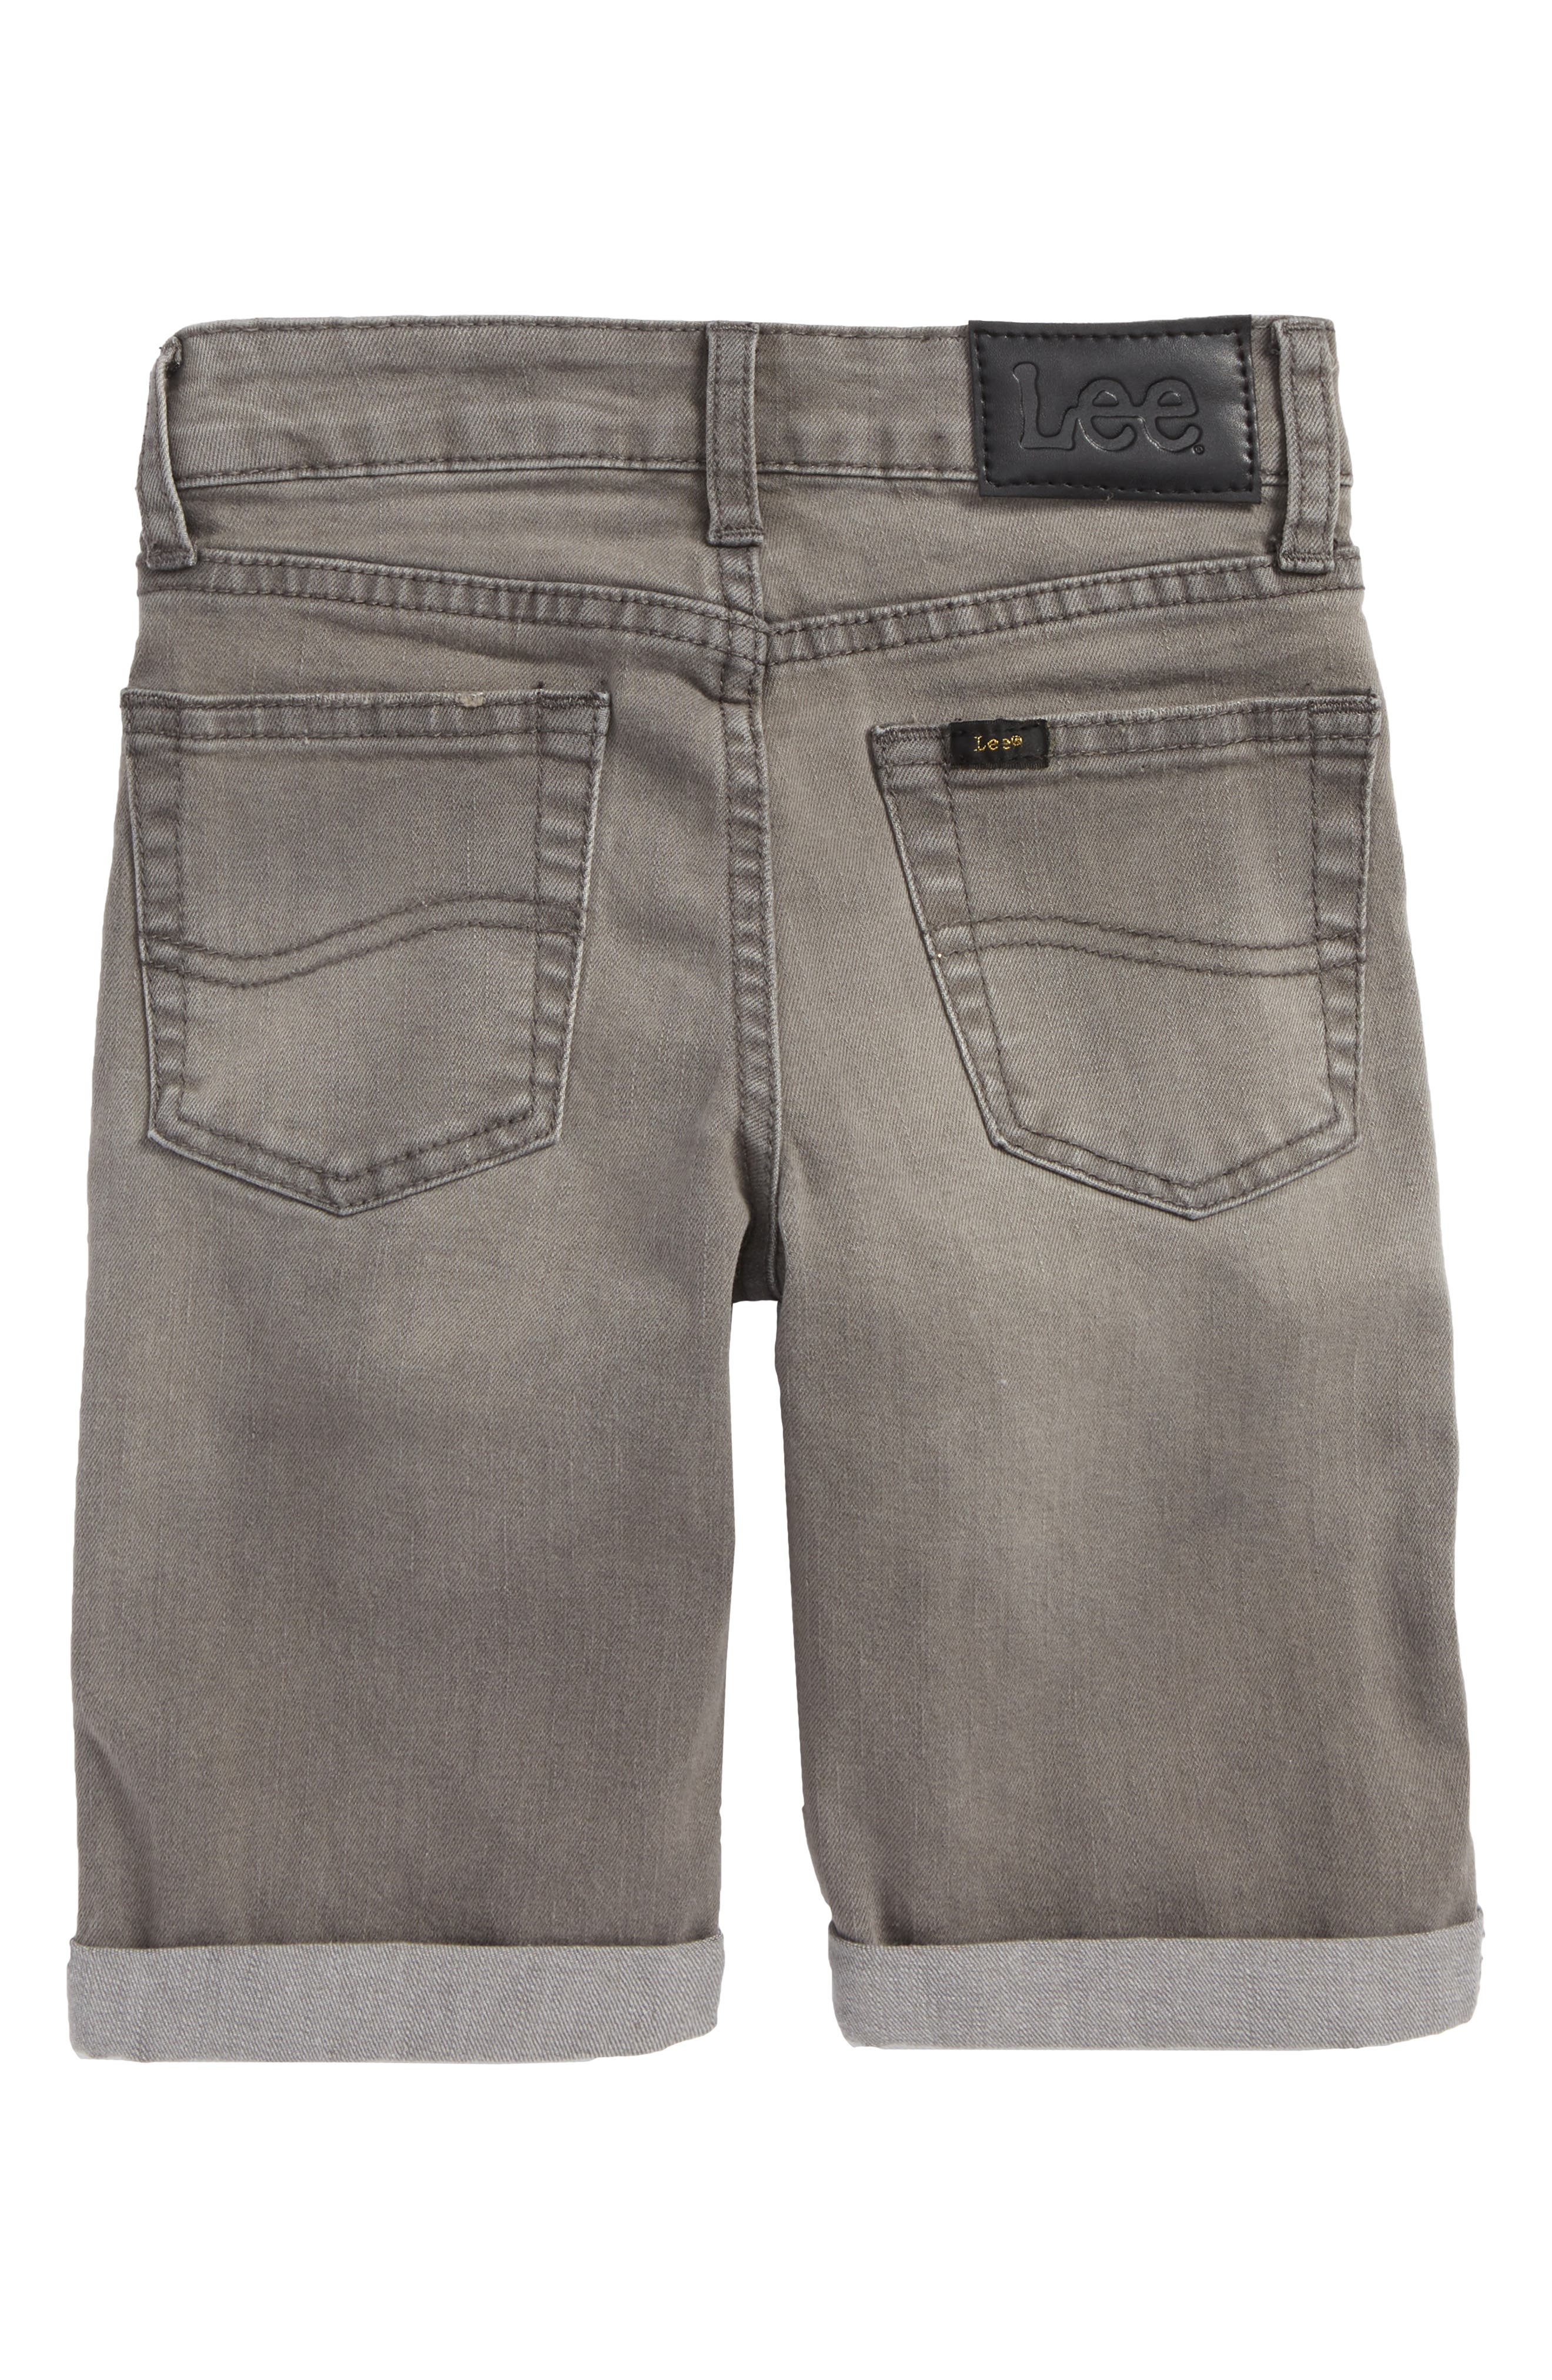 Stretch Denim Roll Cuff Shorts,                             Alternate thumbnail 2, color,                             Wrecked Boat Grey